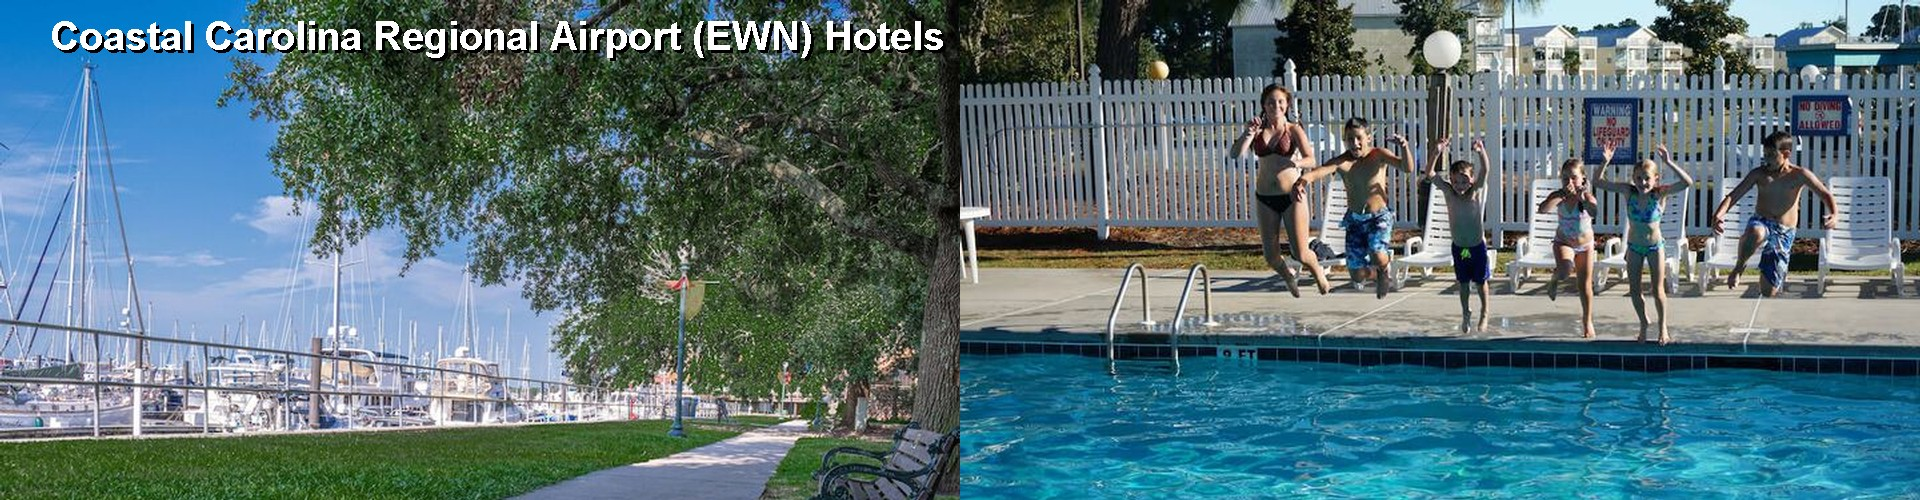 5 Best Hotels near Coastal Carolina Regional Airport (EWN)